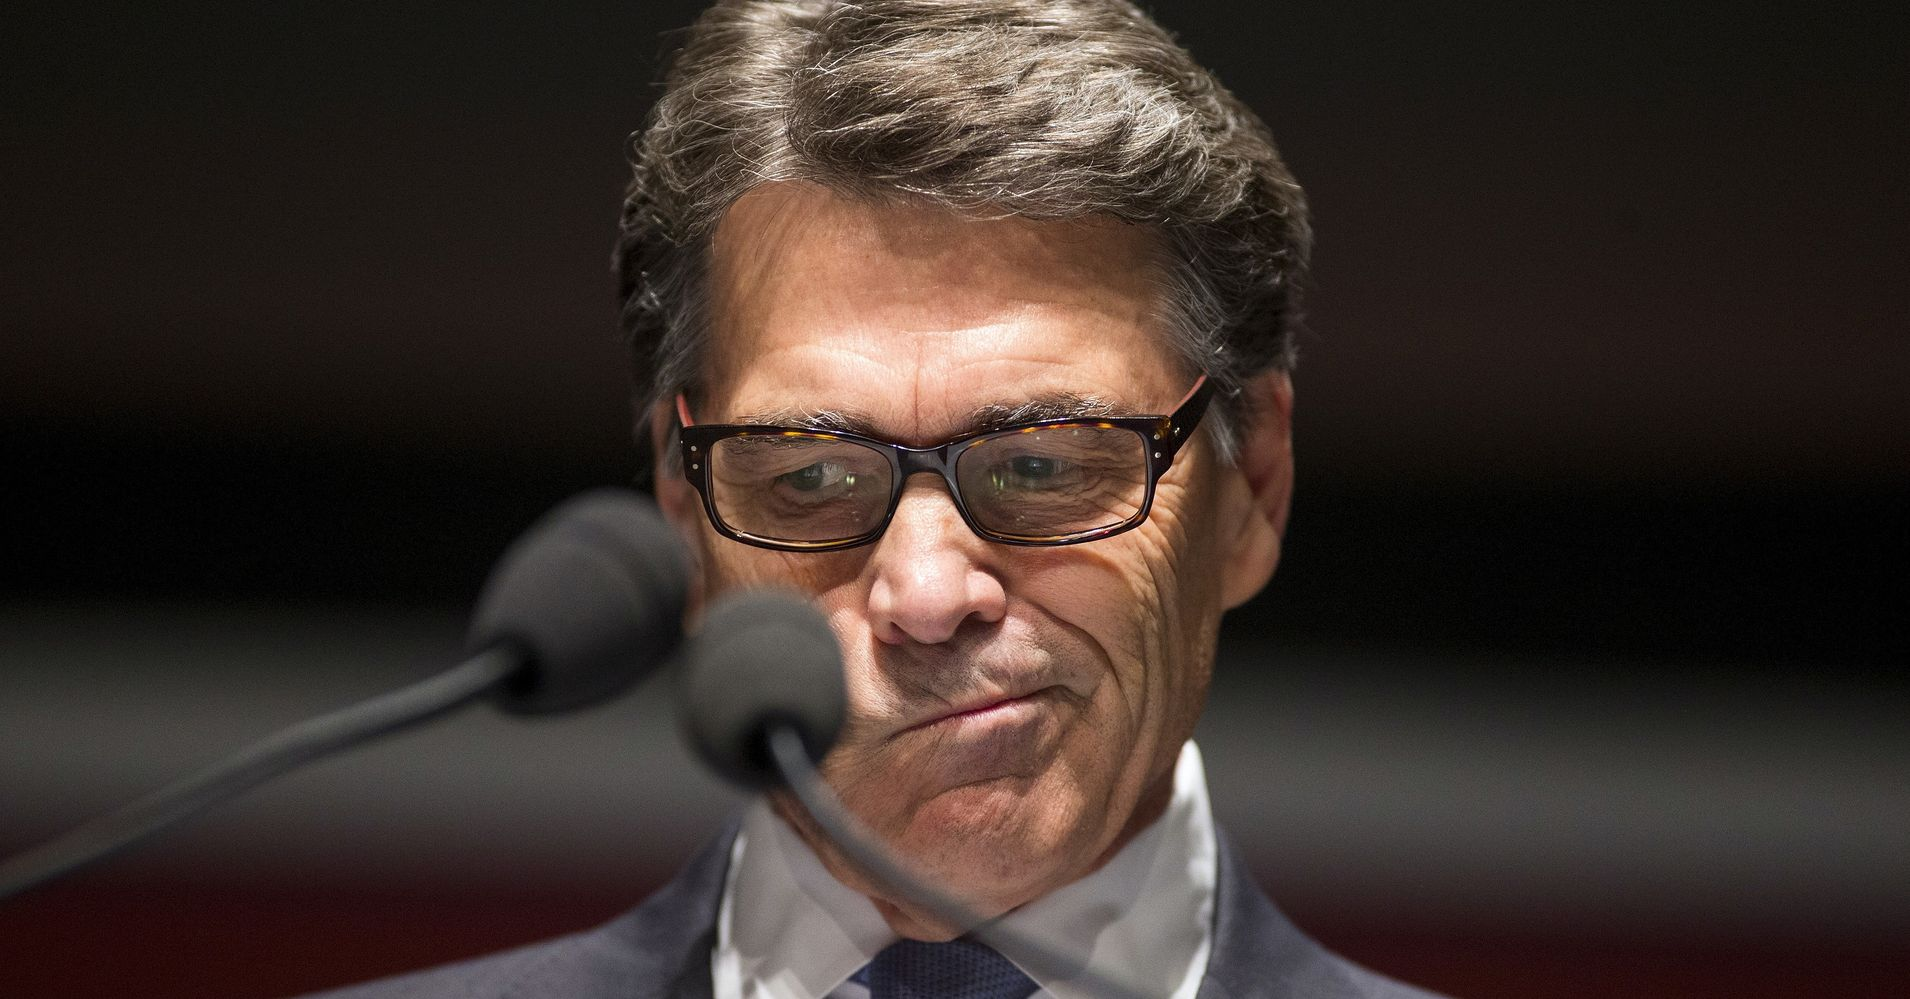 Rick Perry Gets Schooled On Climate Change